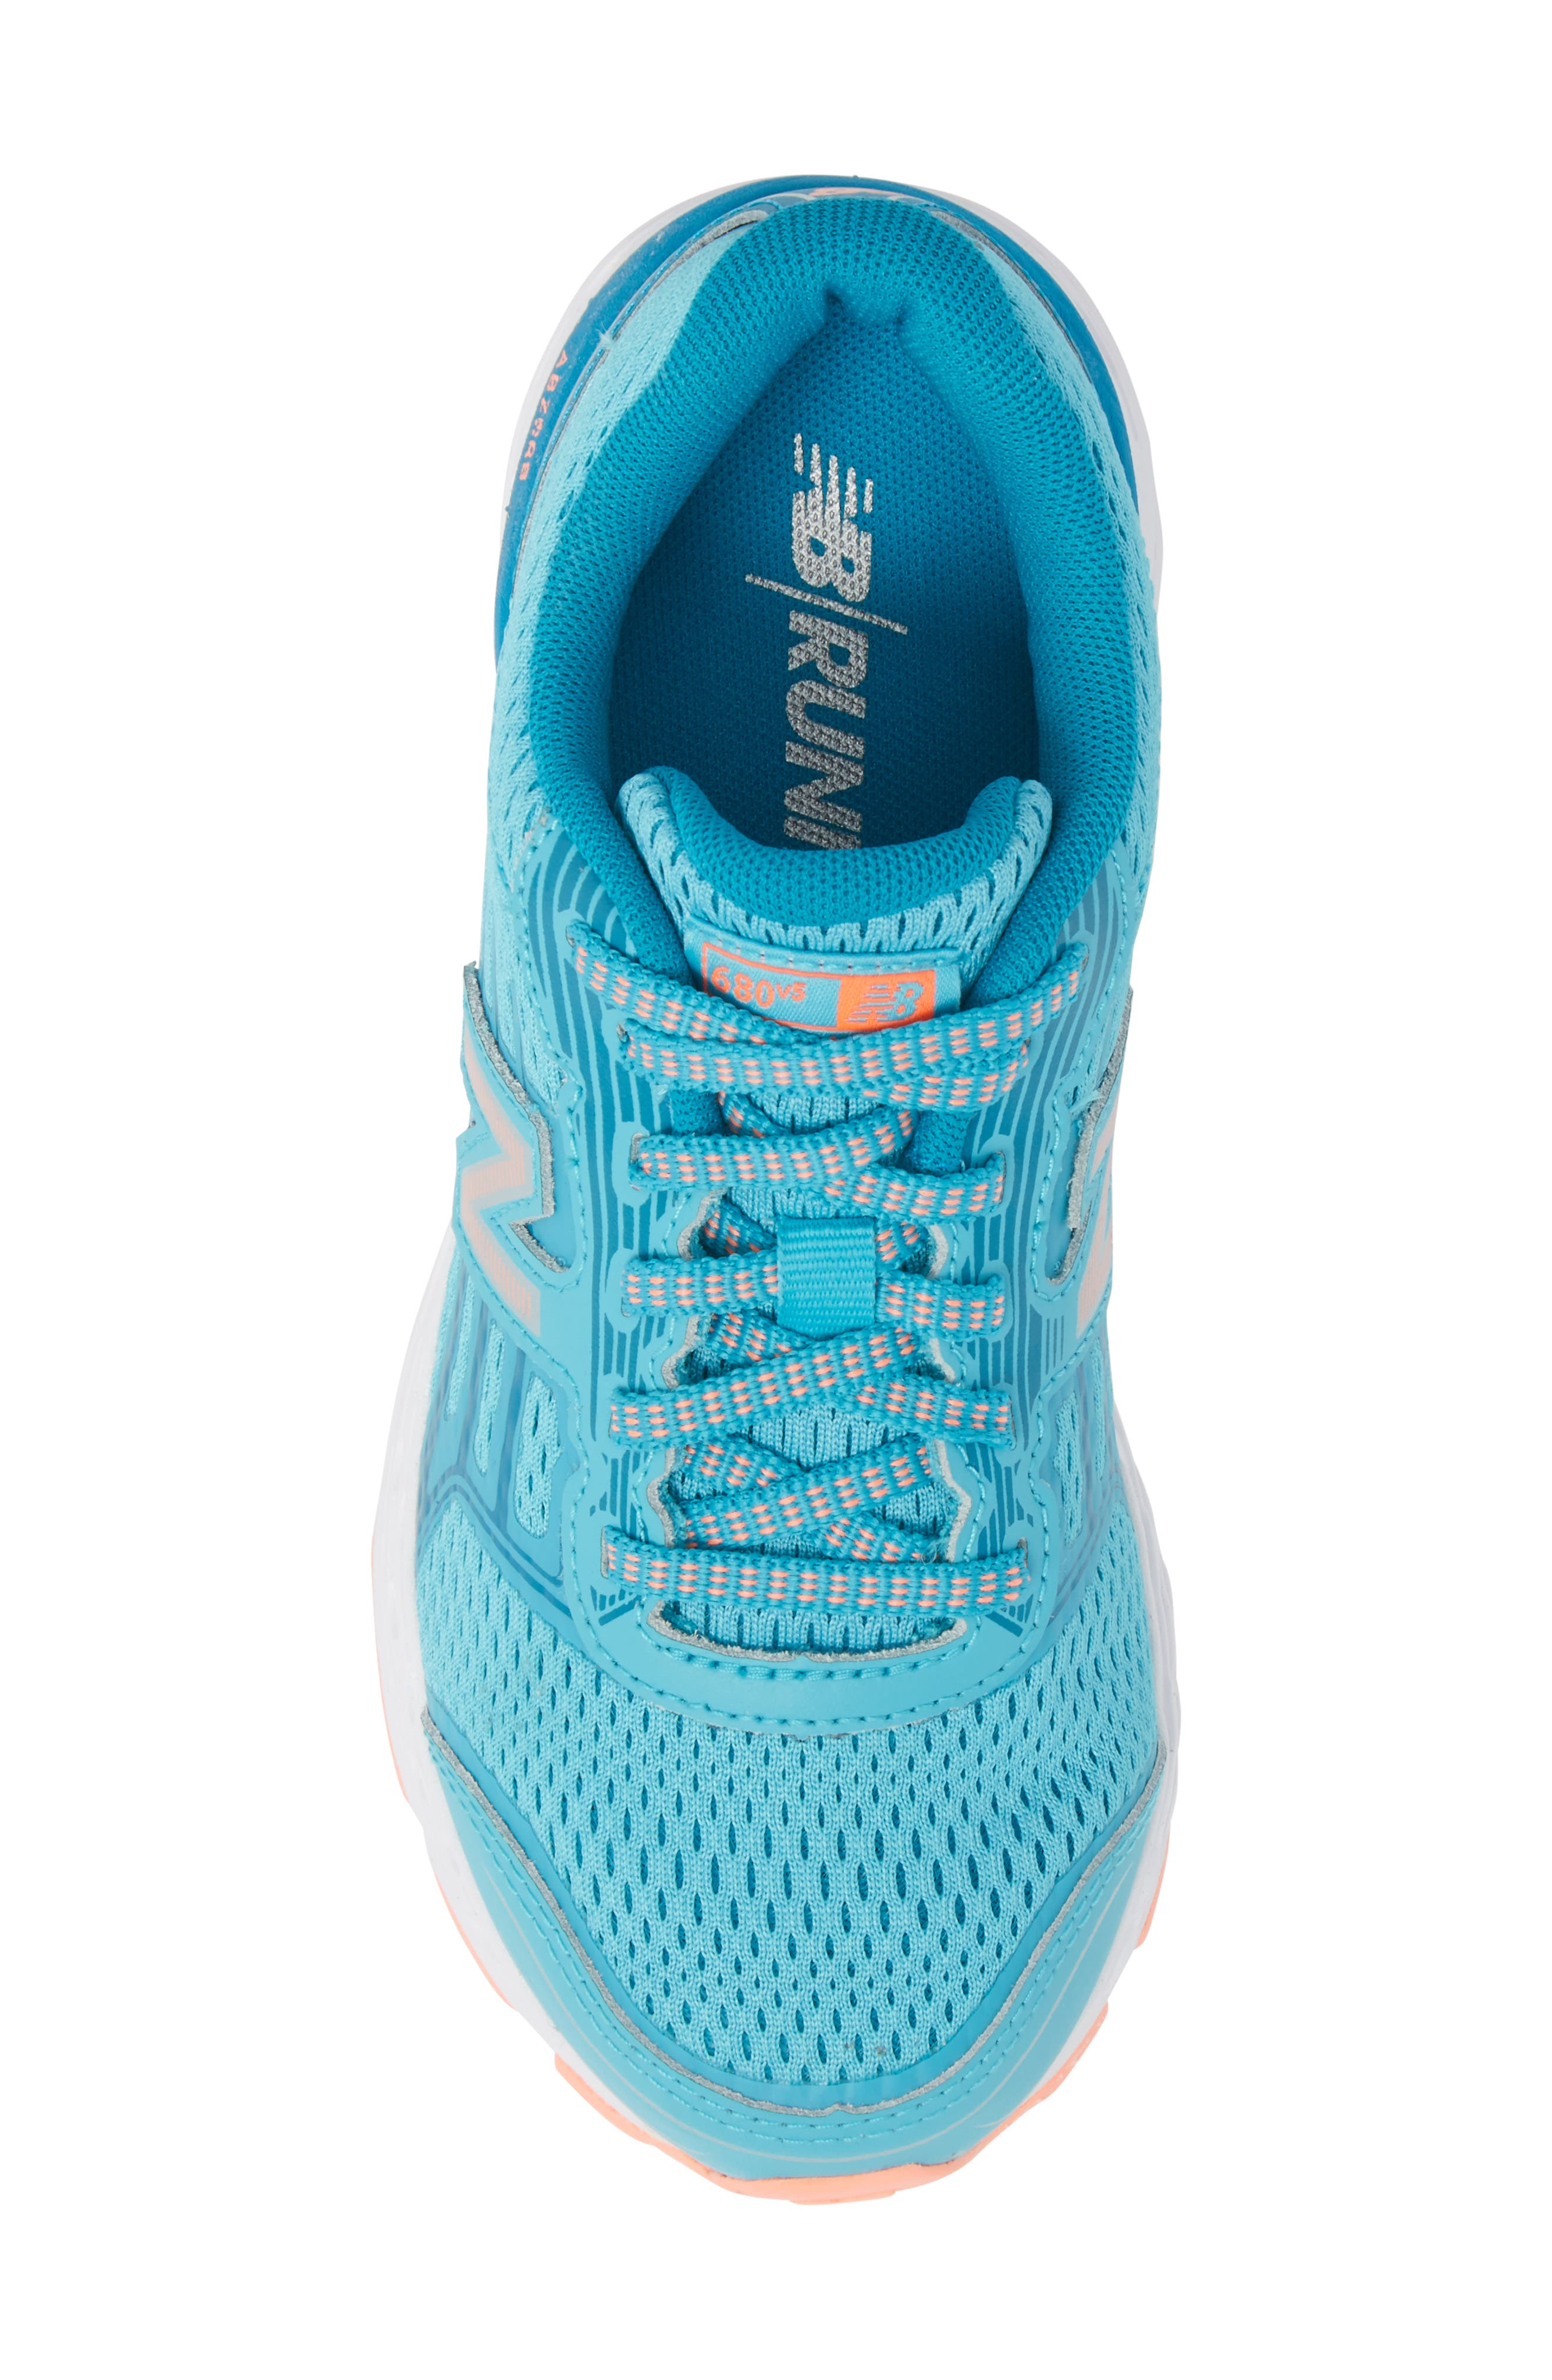 680v5 Running Shoe,                             Alternate thumbnail 5, color,                             DEEP OZONE BLUE